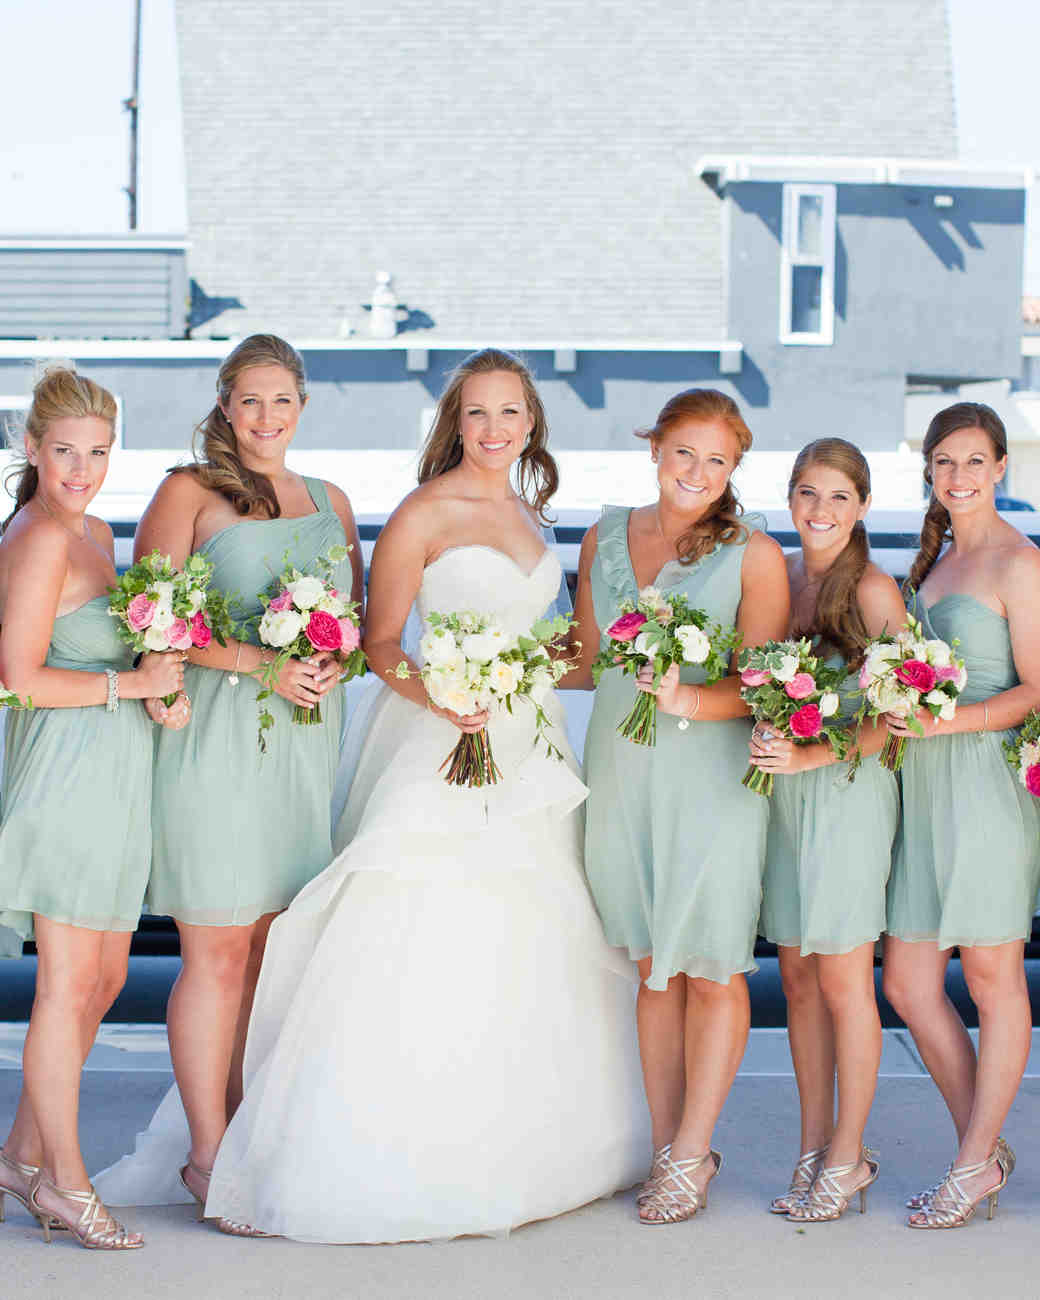 Bridesmaid dresses in same color different styles images bridesmaid dresses same color different styles gallery nautical wedding bridesmaid dresses image collections braidsmaid a blue ombrellifo Images